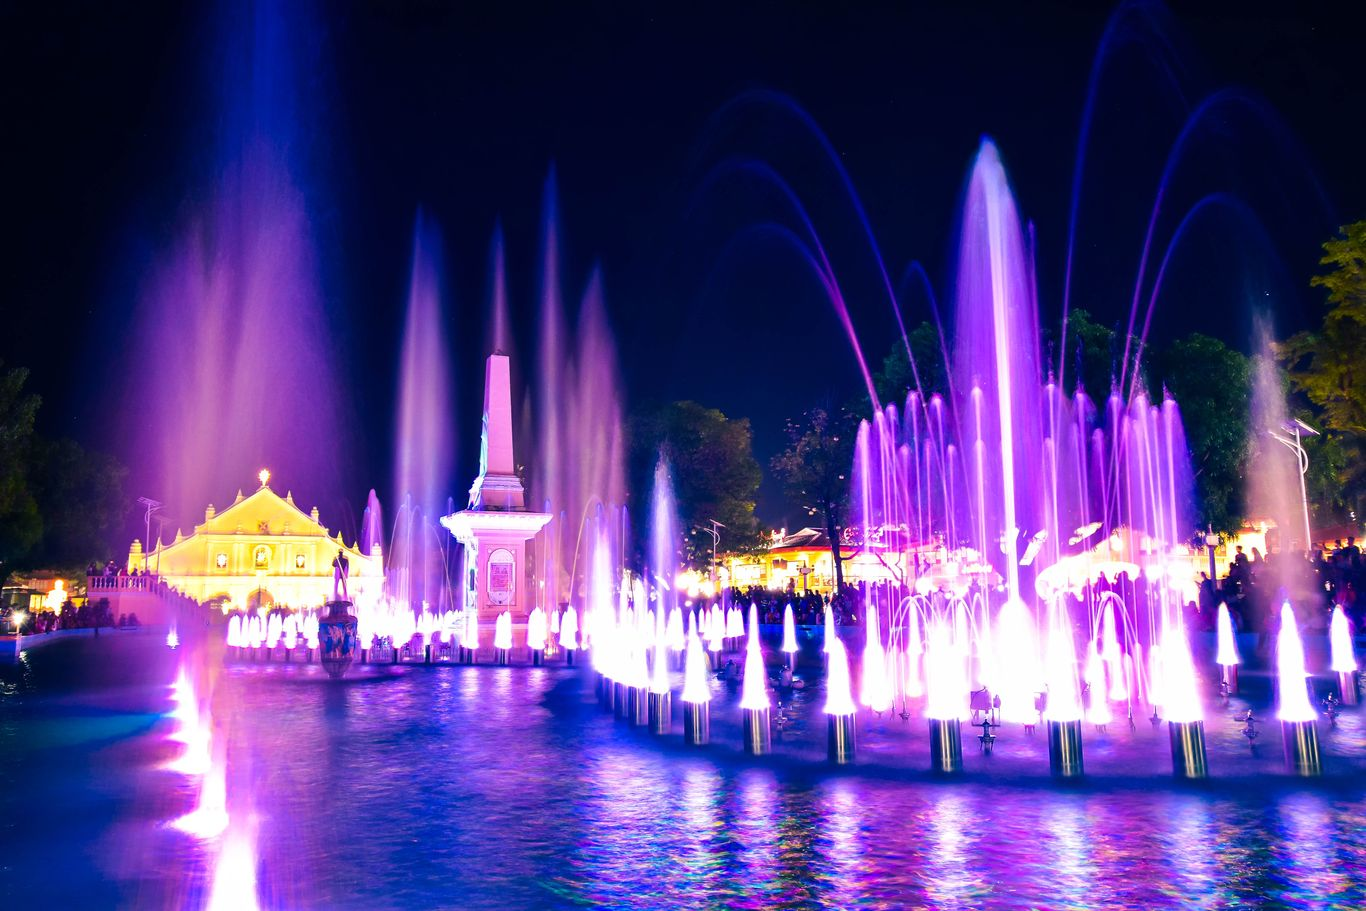 Spurting fountains illuminated by lights at night